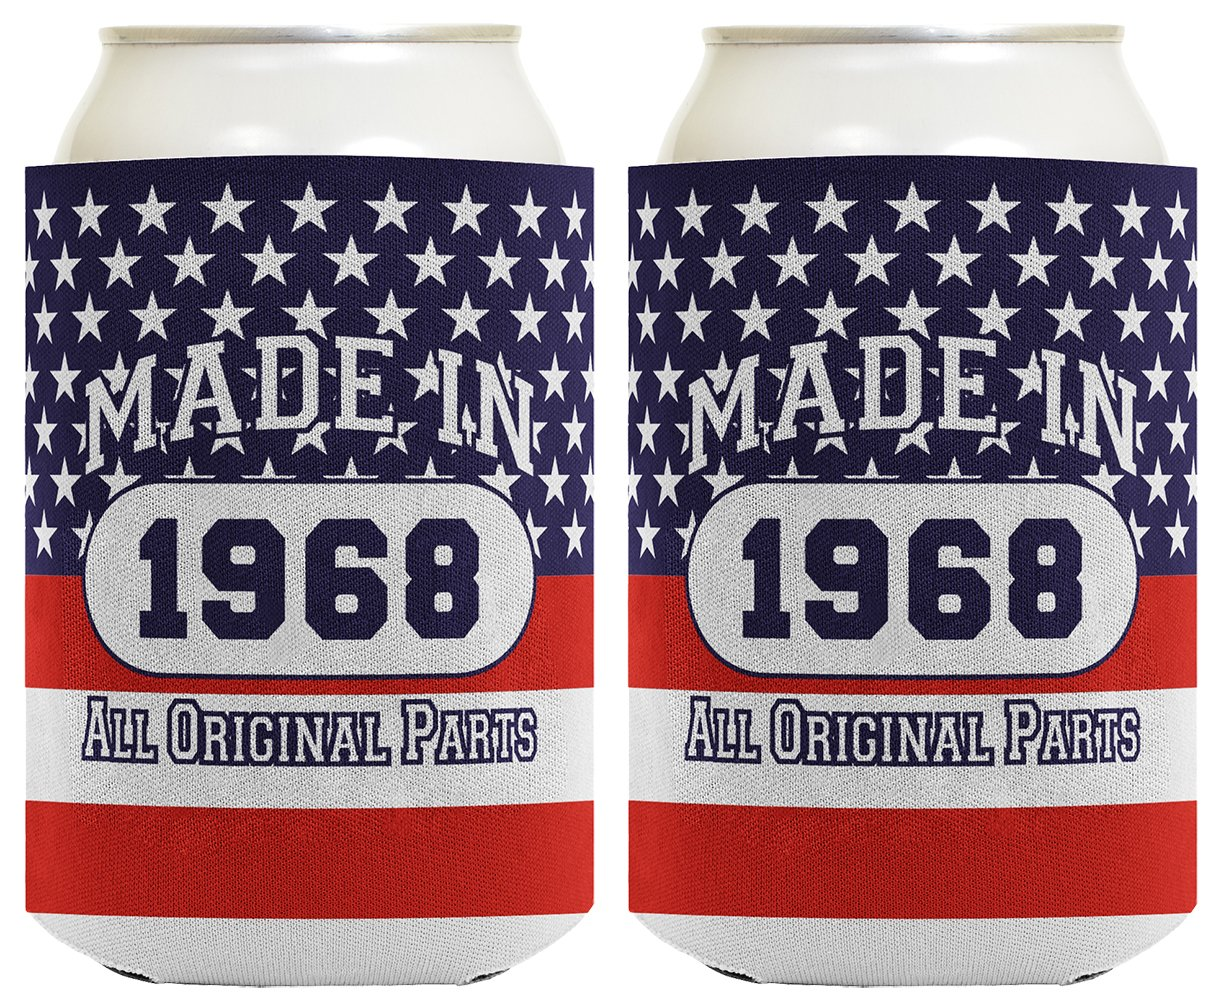 50th Birthday Gift Coolie Made 1968 Can Coolies 2 Pack Can Coolie Drink Coolers Coolies Patriotic by ThisWear (Image #1)